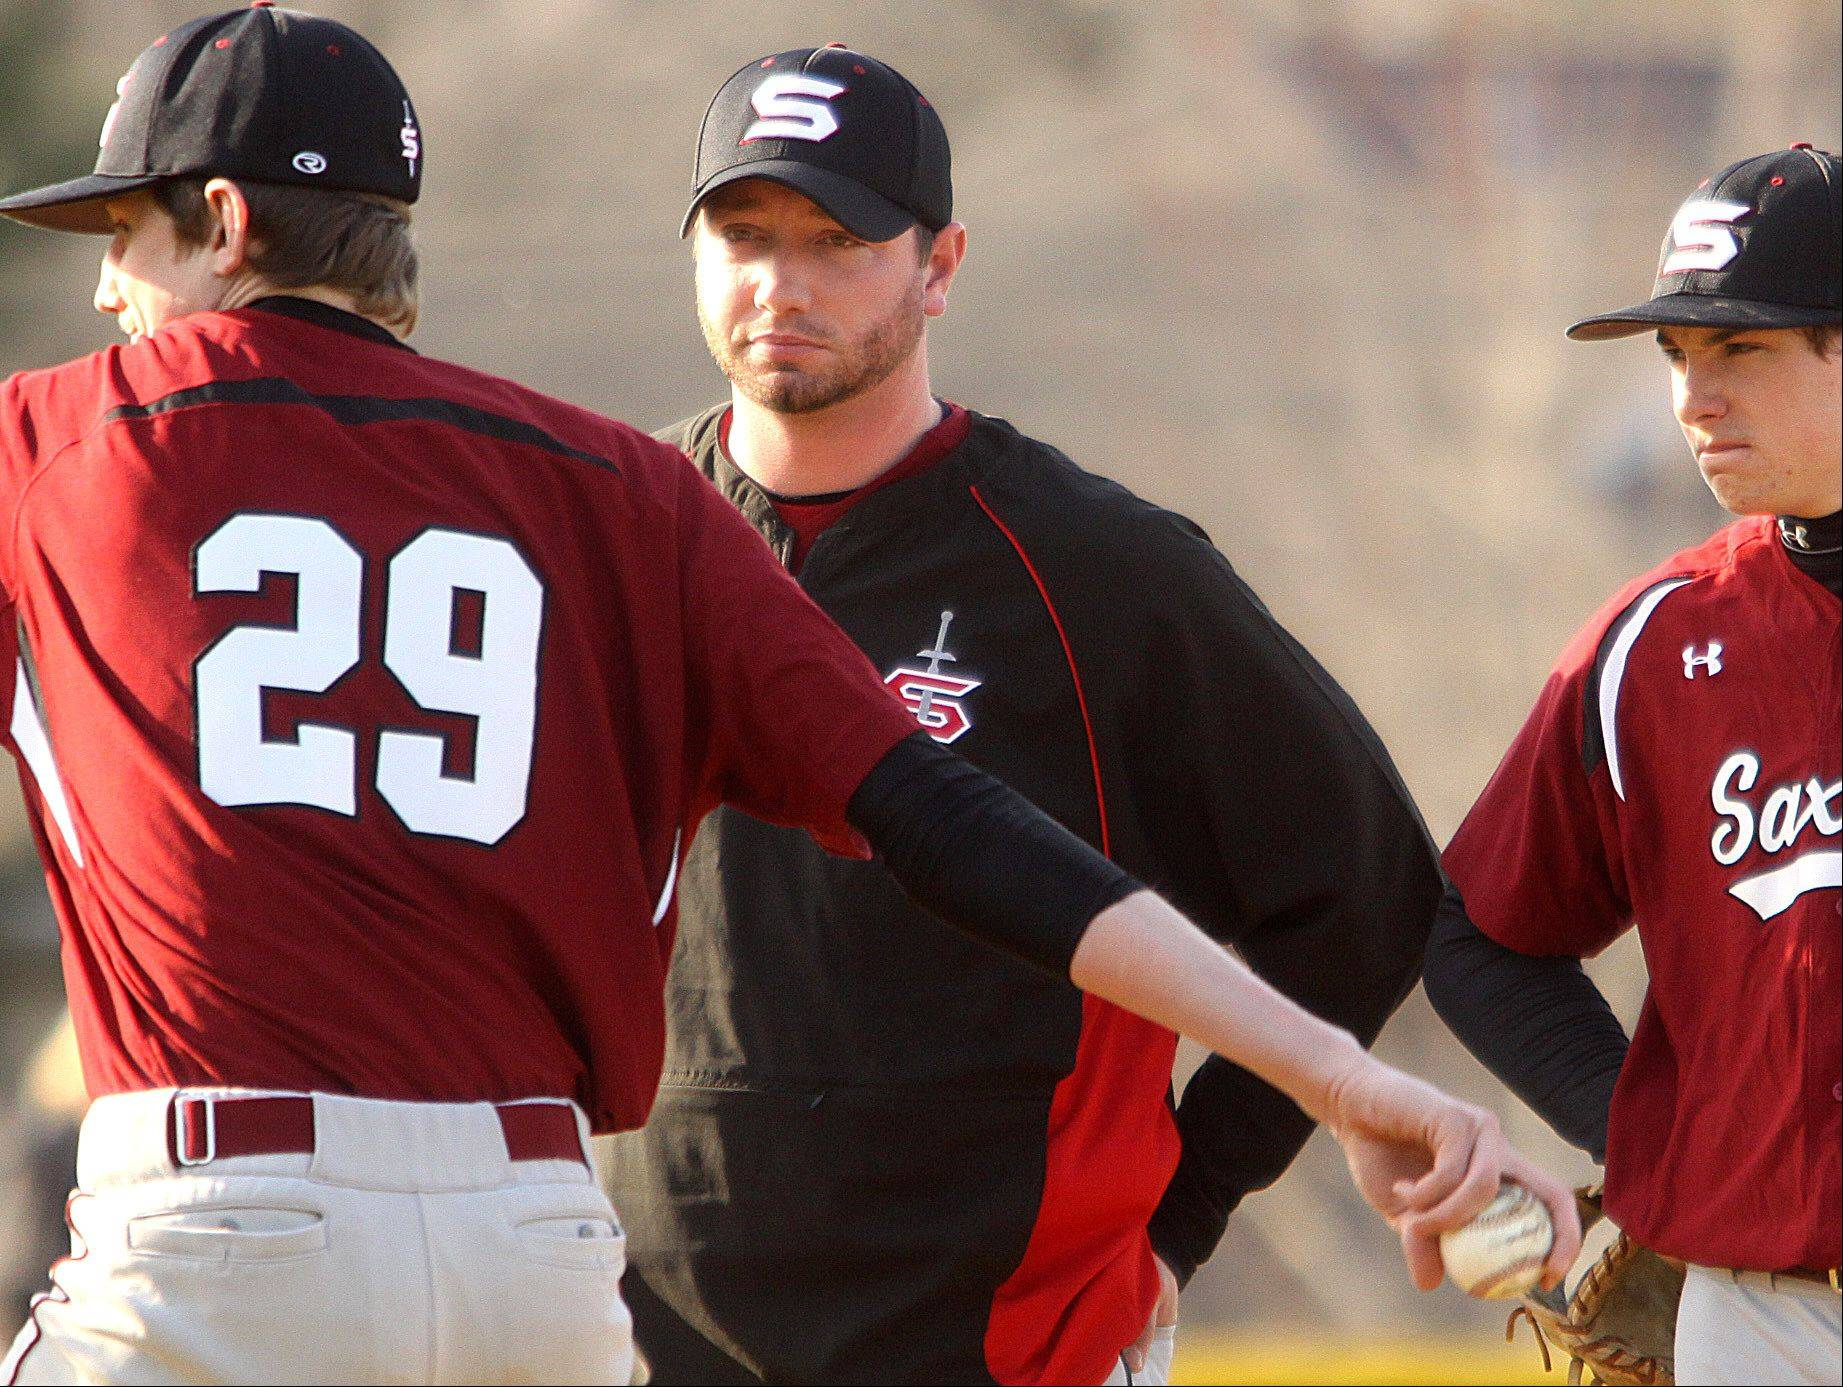 Schaumburg coach Cal Seely, center, monitors warm-up activity of reliever Jon Flynn against Fremd in Palatine on Monday.